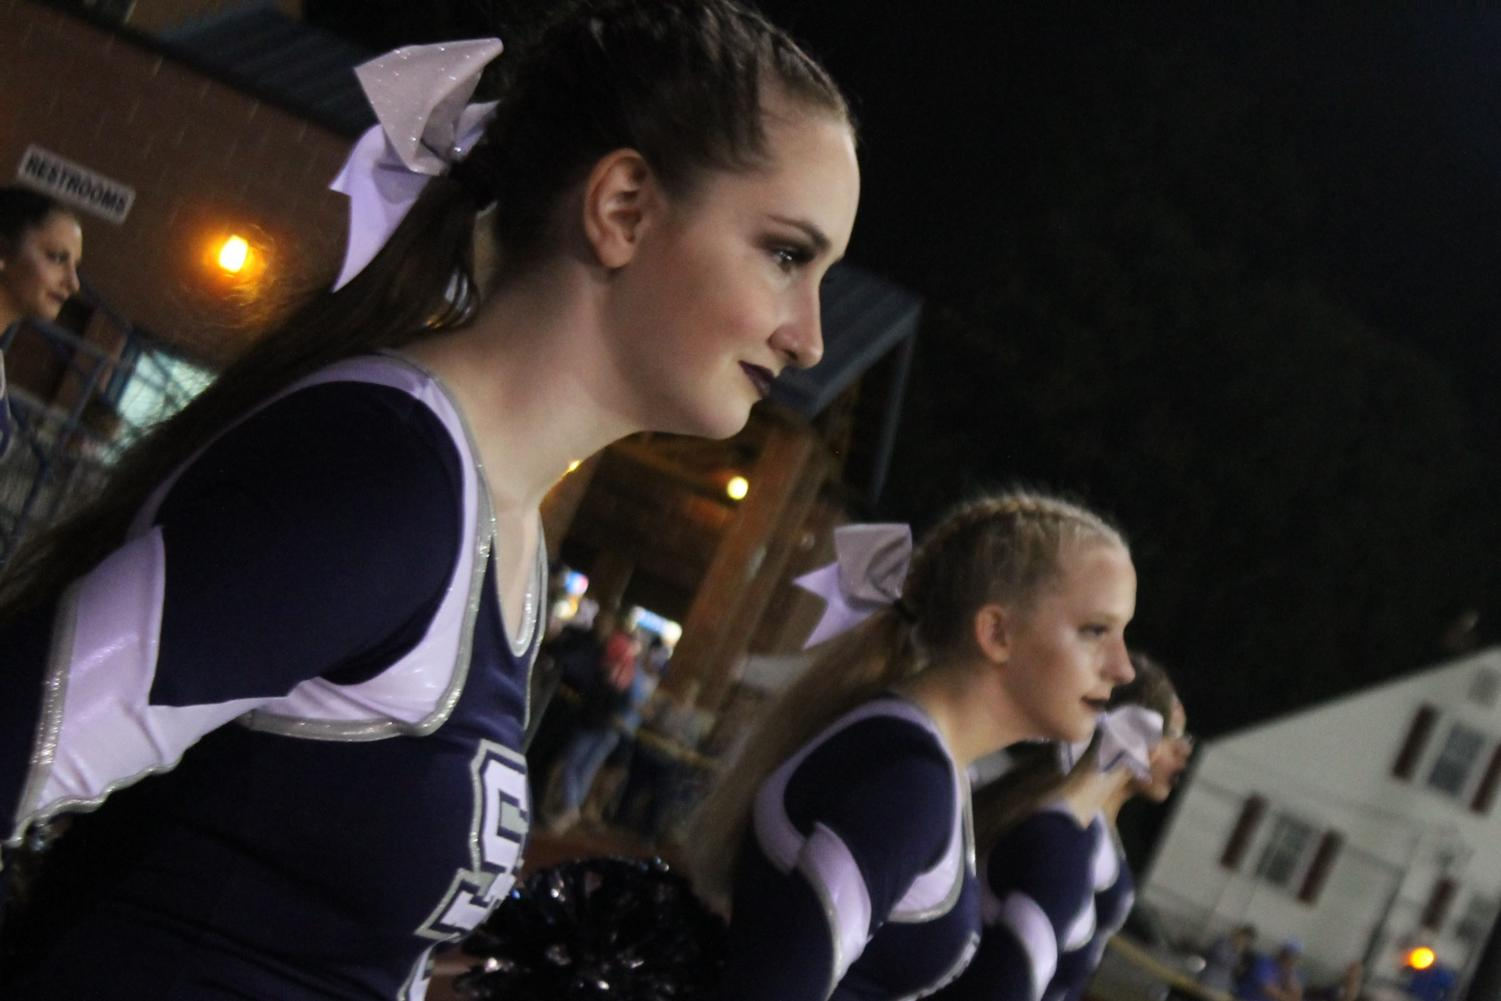 Marissa Sipe and Kat Lewis lined up with their team at a football game